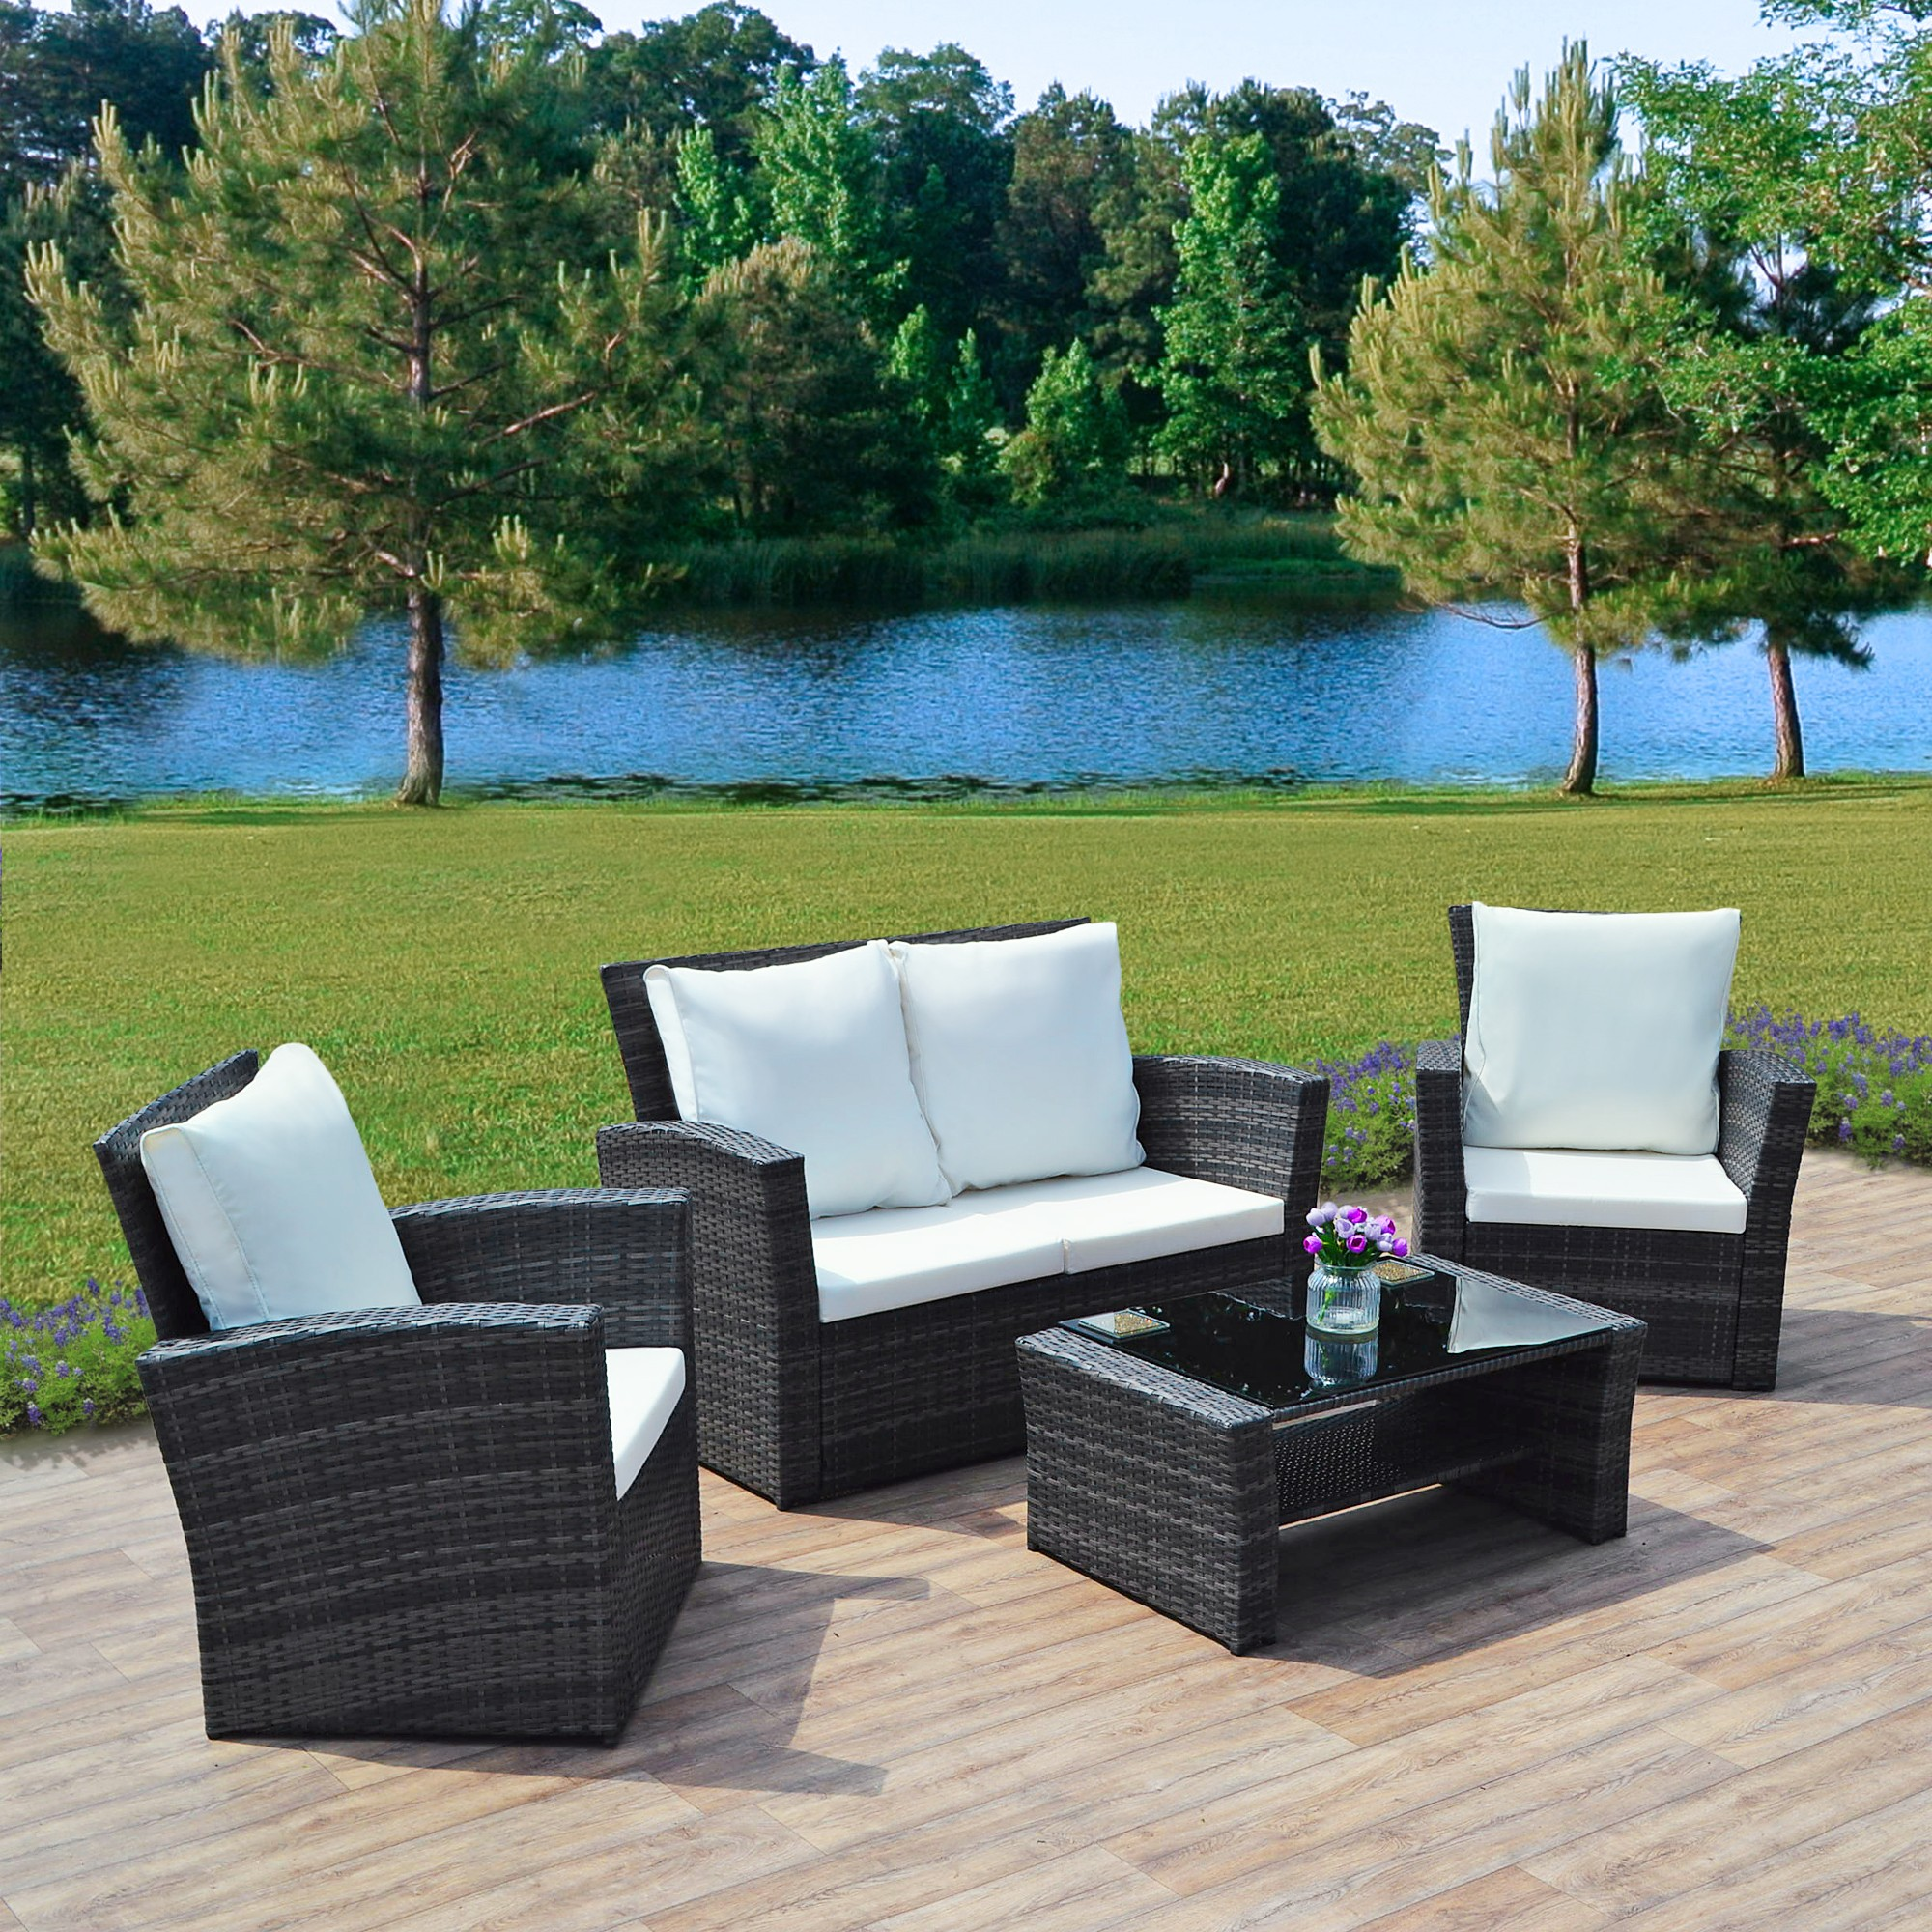 Rattan Sofa Sets Garden Furniture O Winter 57 Off Best